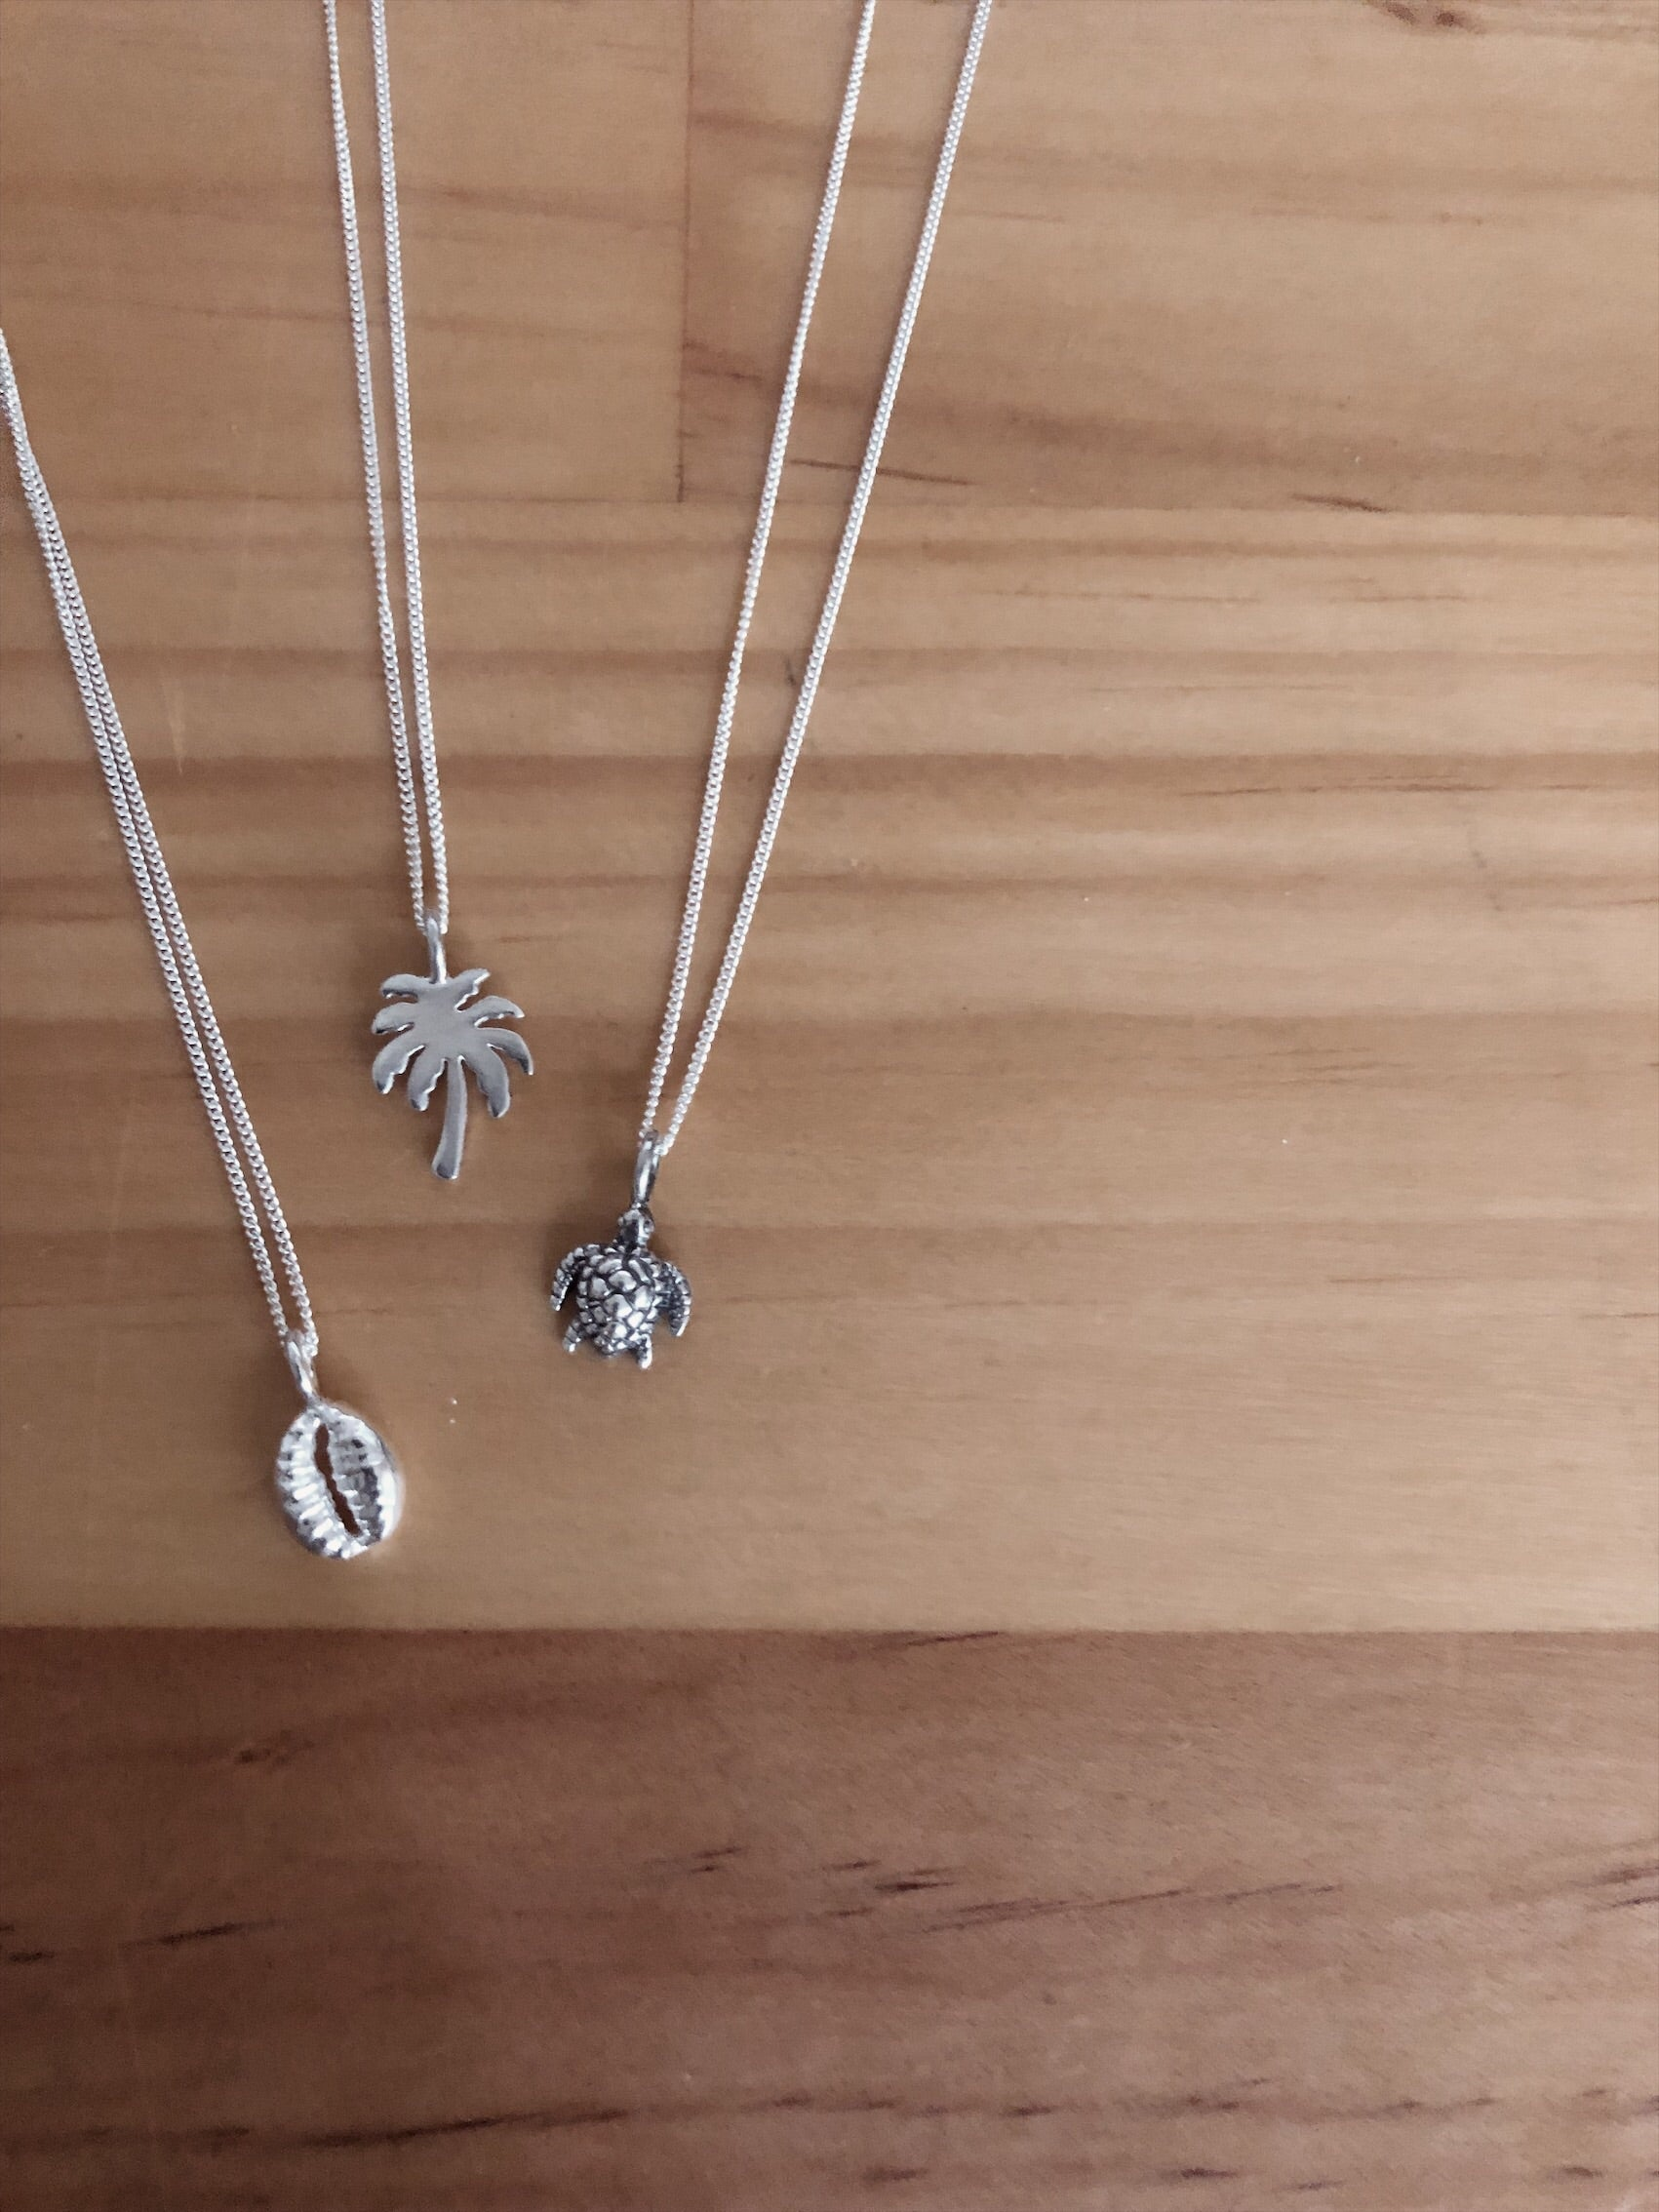 LITTLE TURTLE necklace